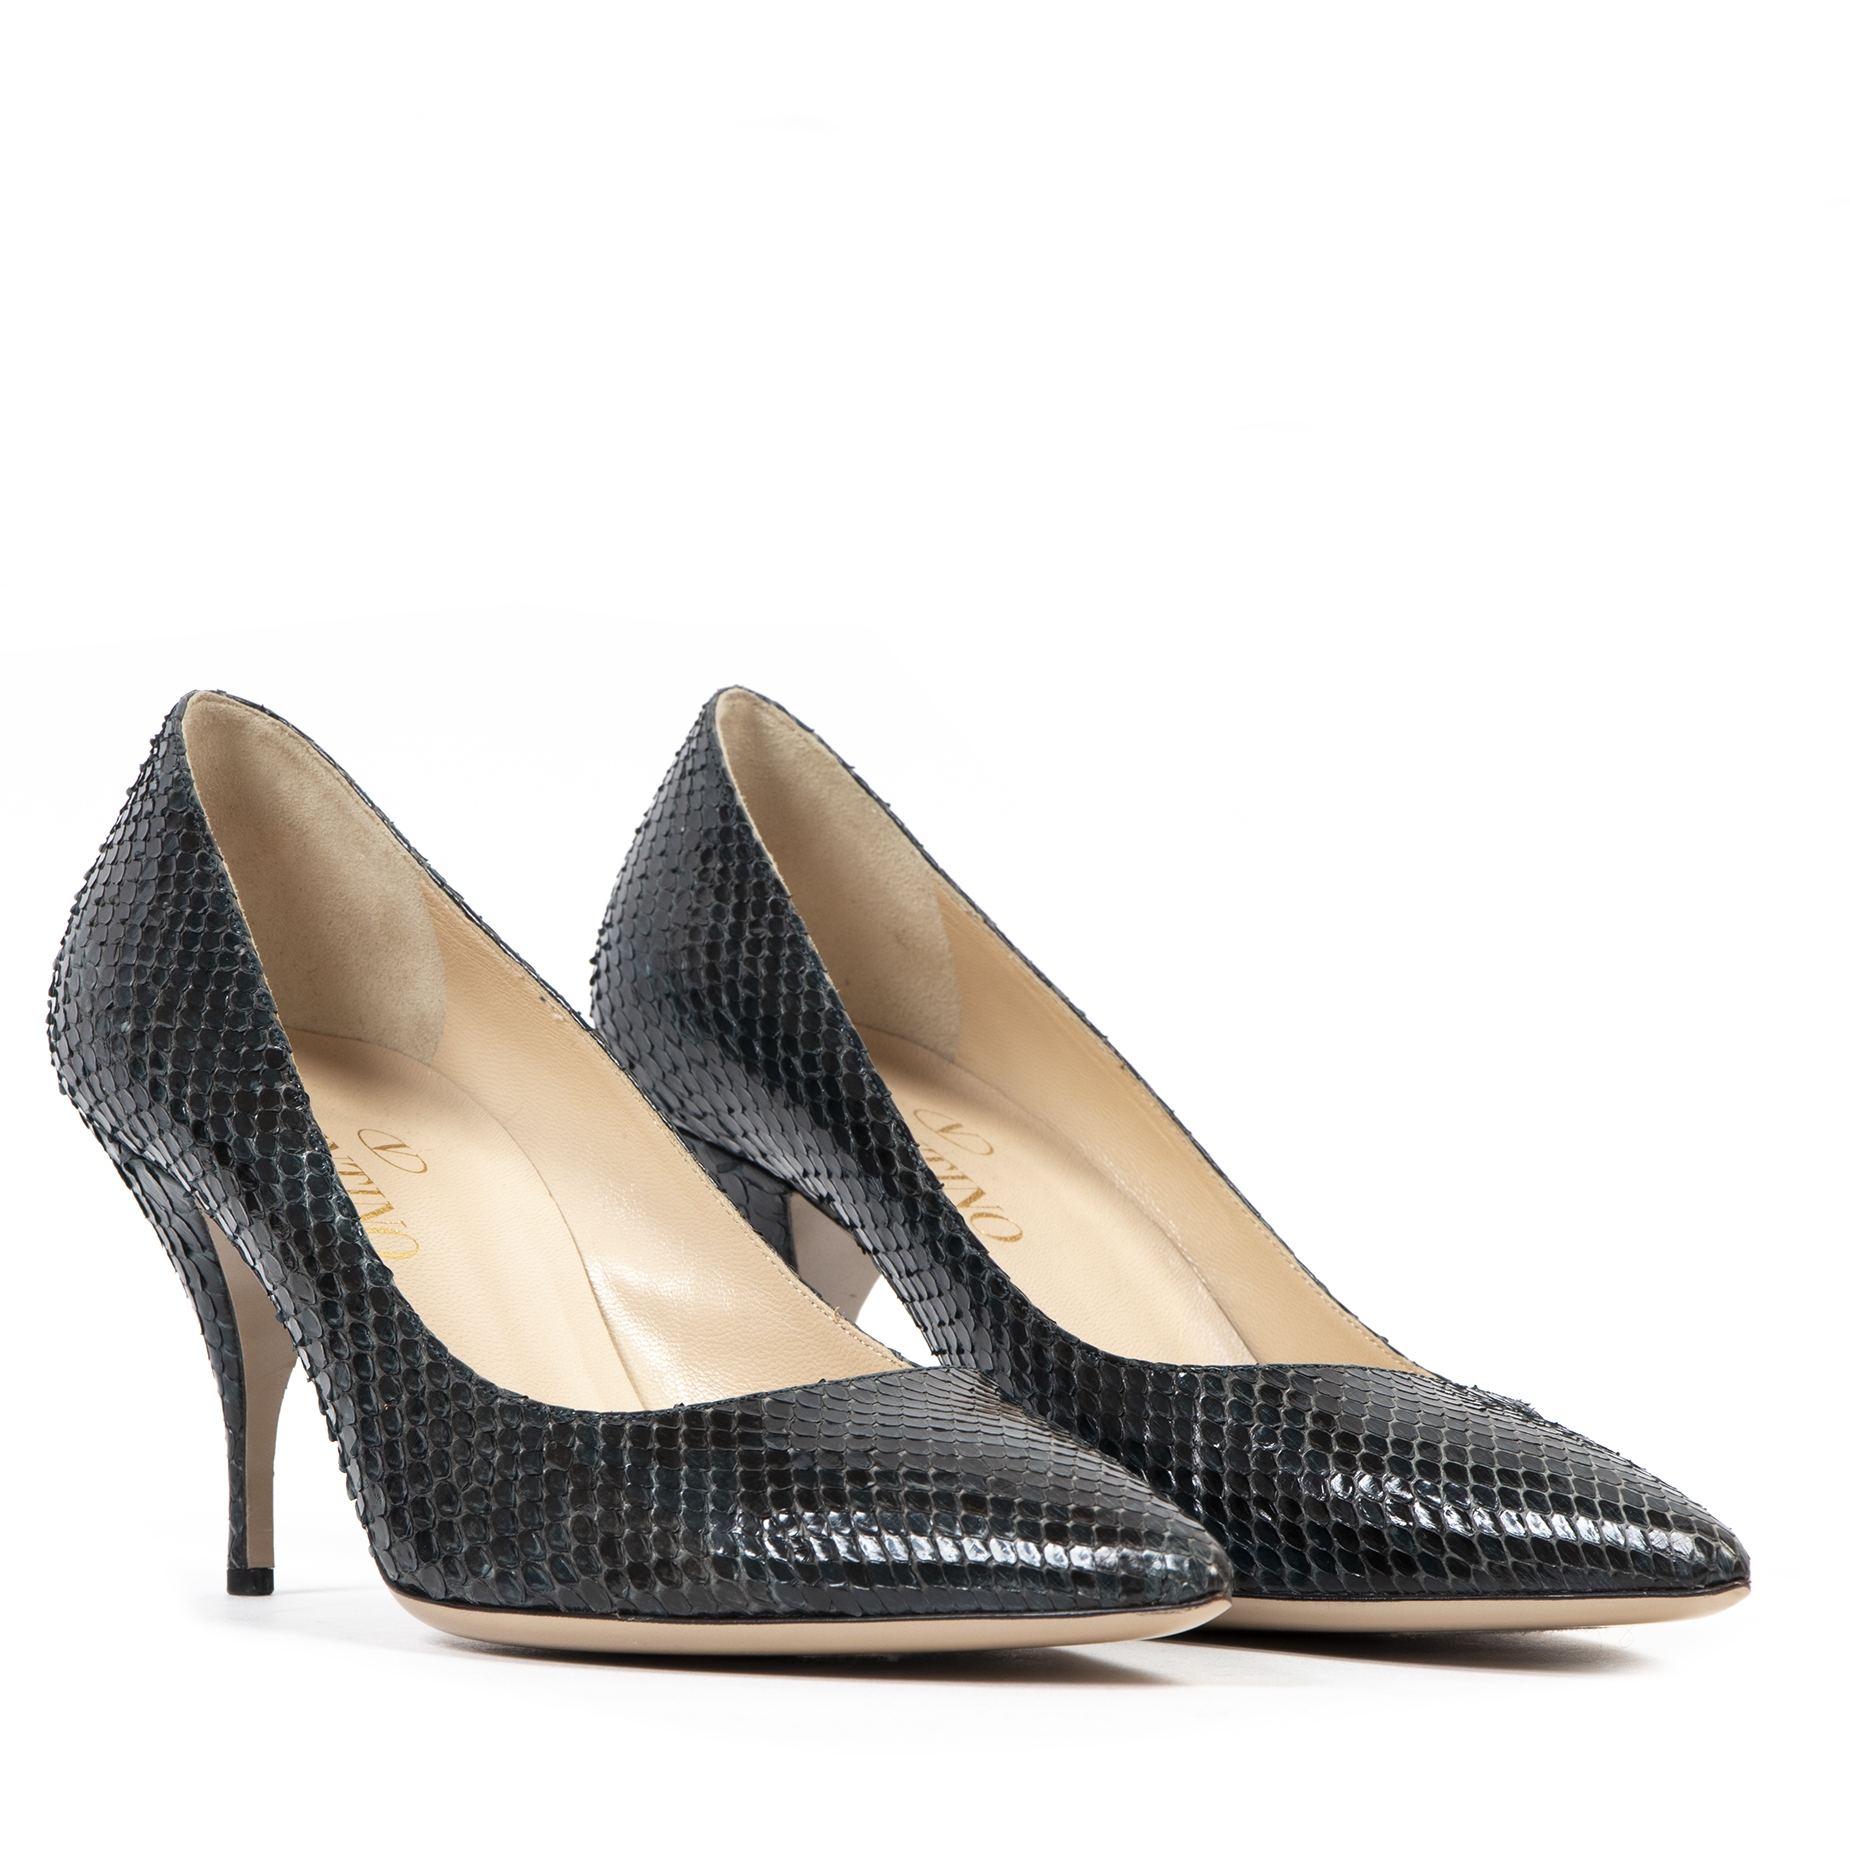 Valentino Teal Snakeskin Pumps - Size 40 available online at Labellov secondhand